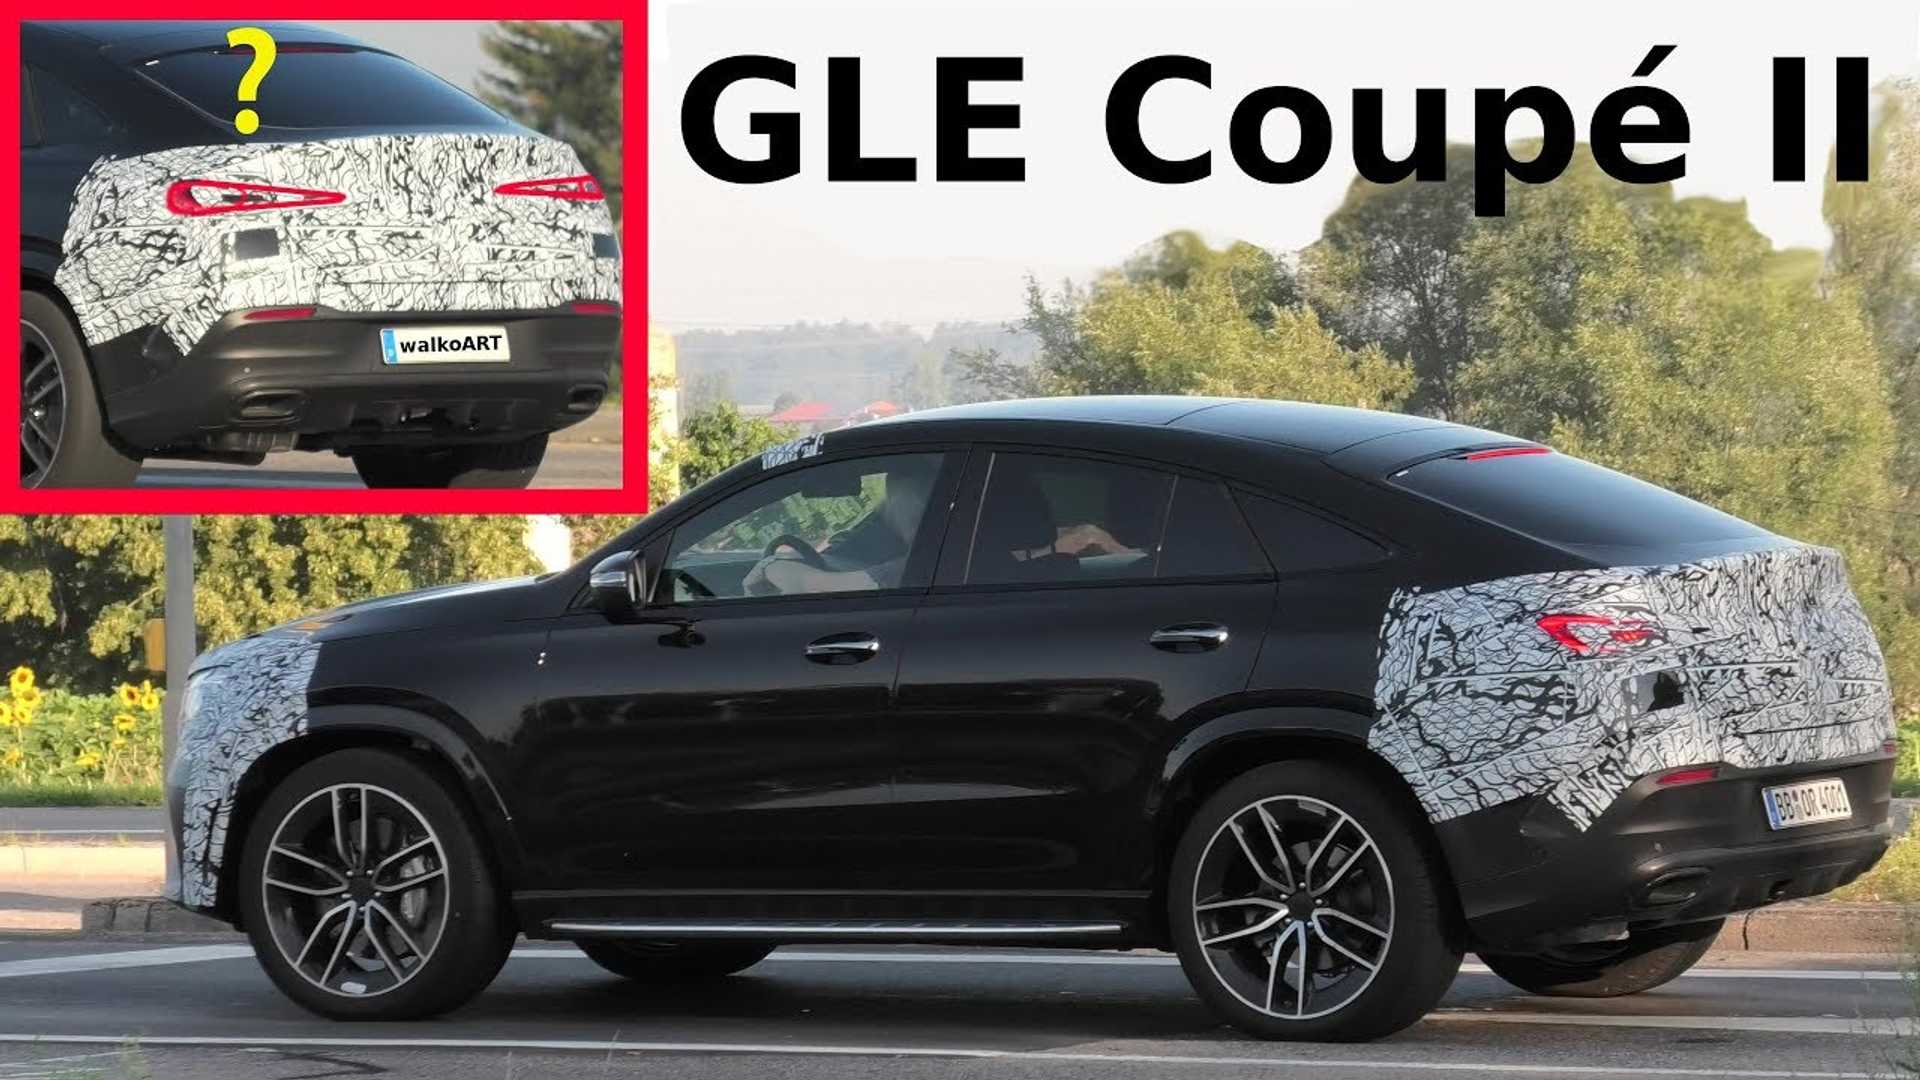 2020 Mercedes Gle Coupe Seen With Minimal Camo Reveal Coming Soon